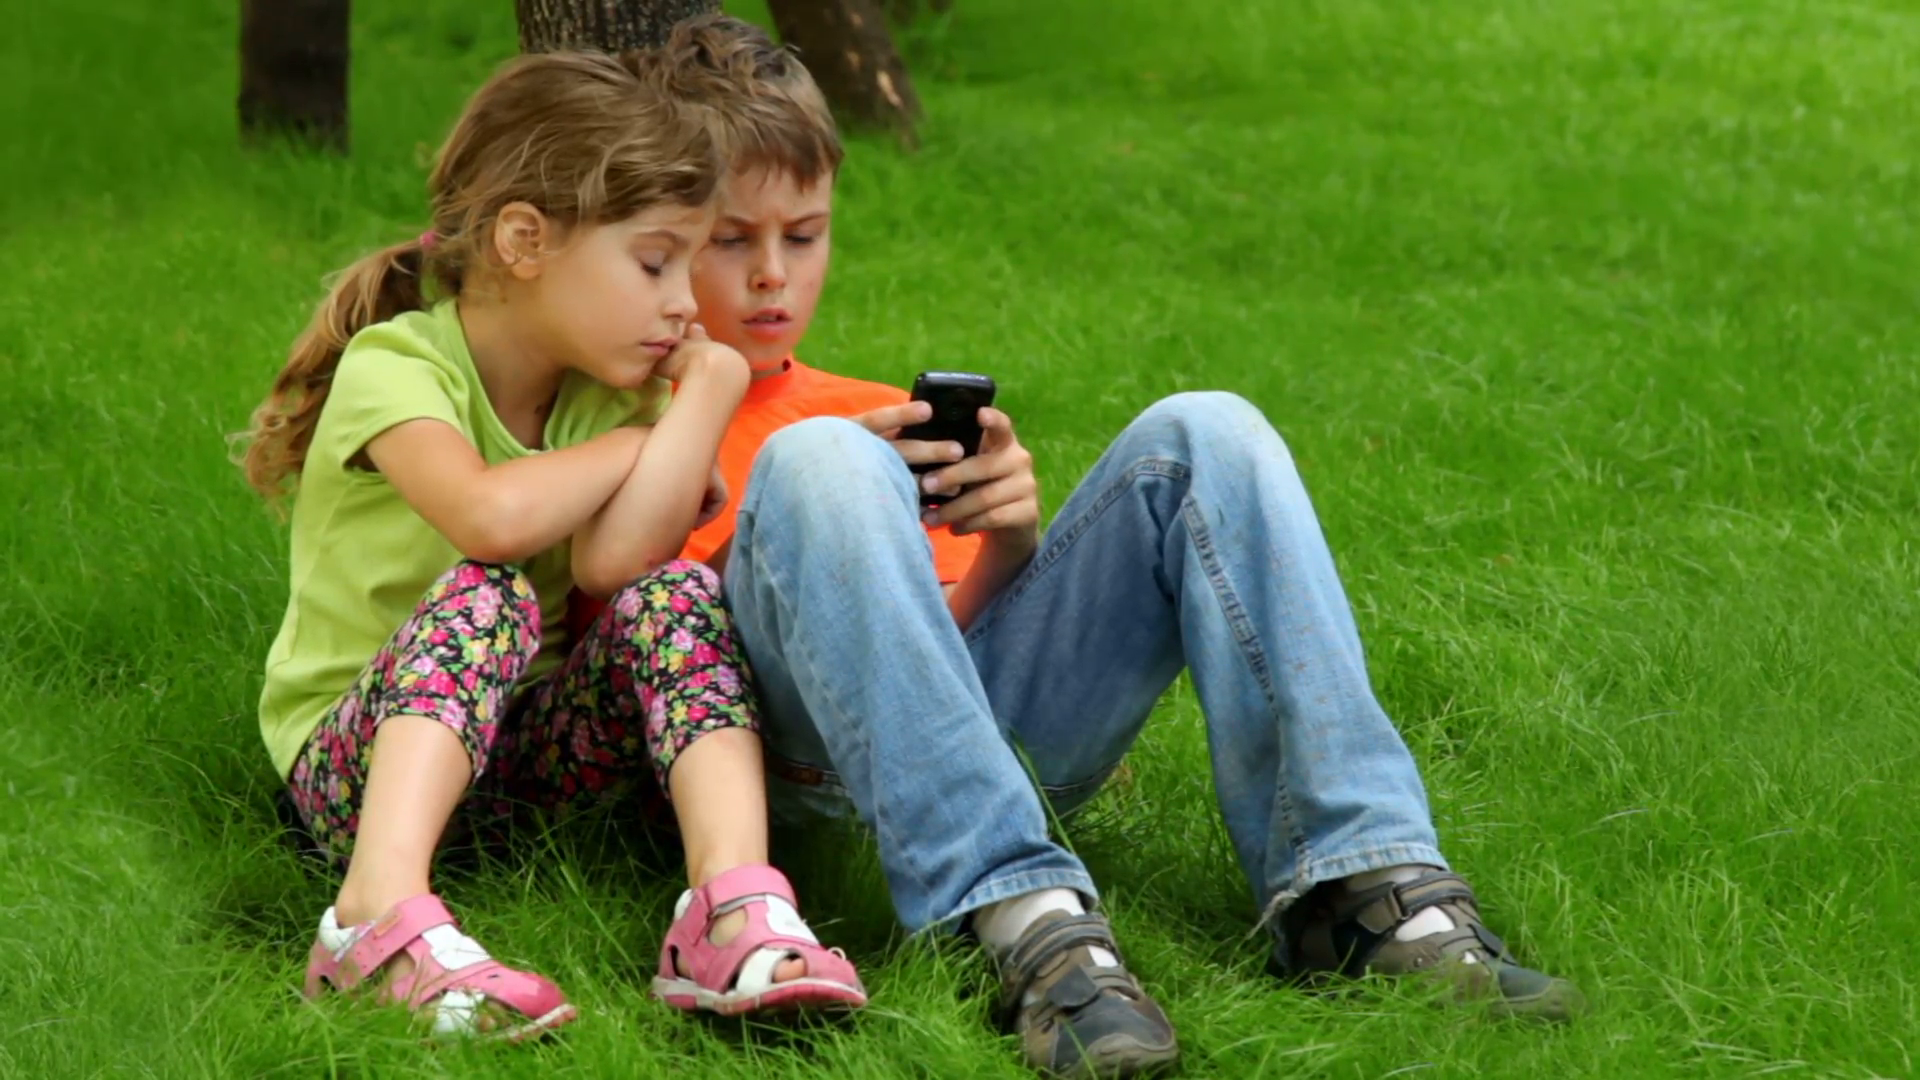 Two kids sit together, boy plays with digital game on cell phone ...